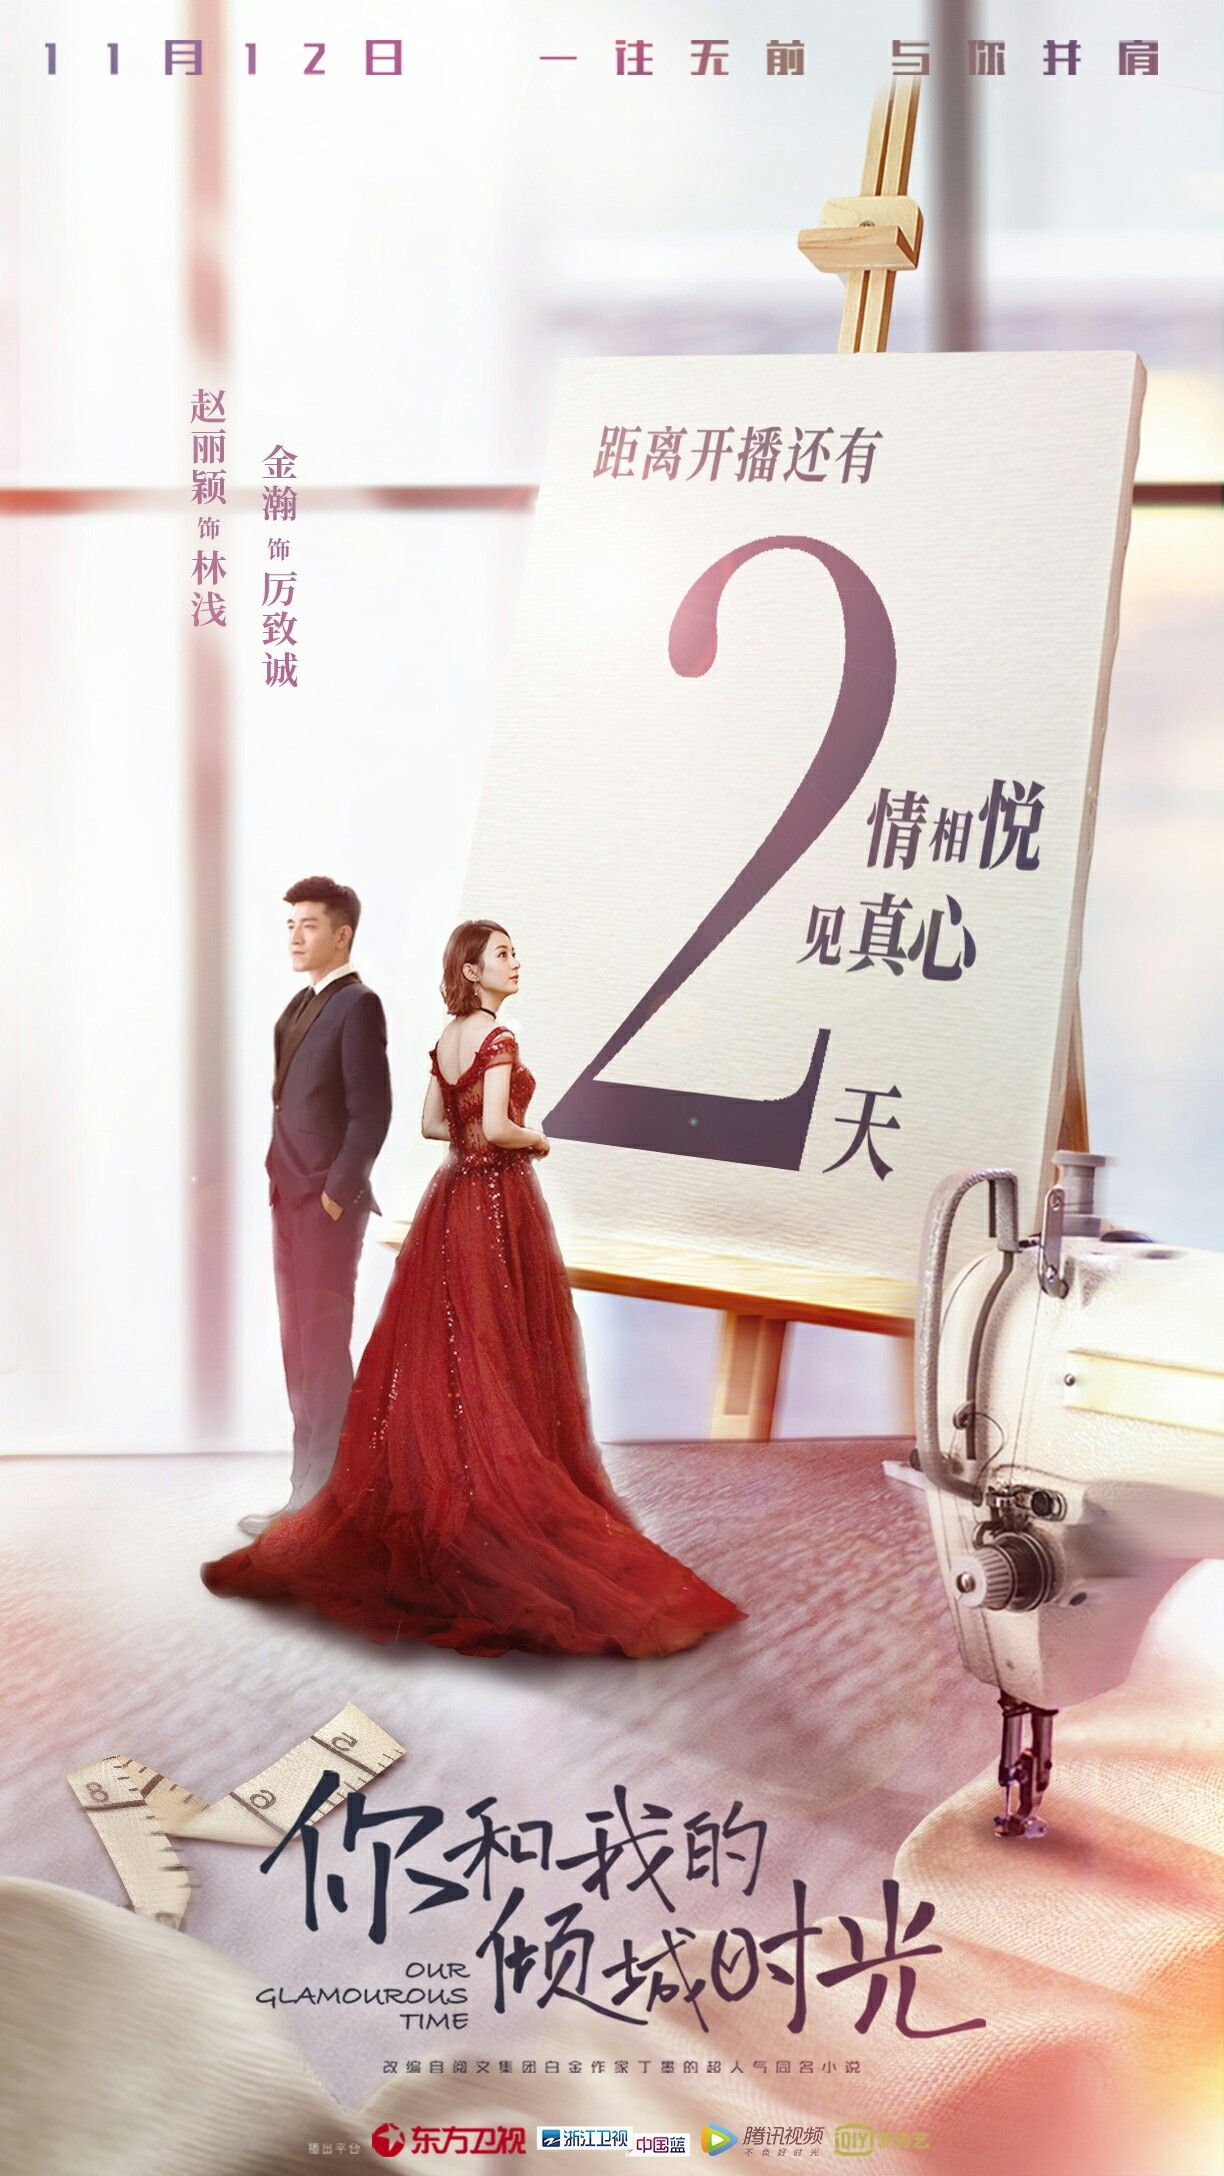 Zhao Liying And Jin Han Our Glamorous Time Chinese Posters Graphic Design Posters Glamour